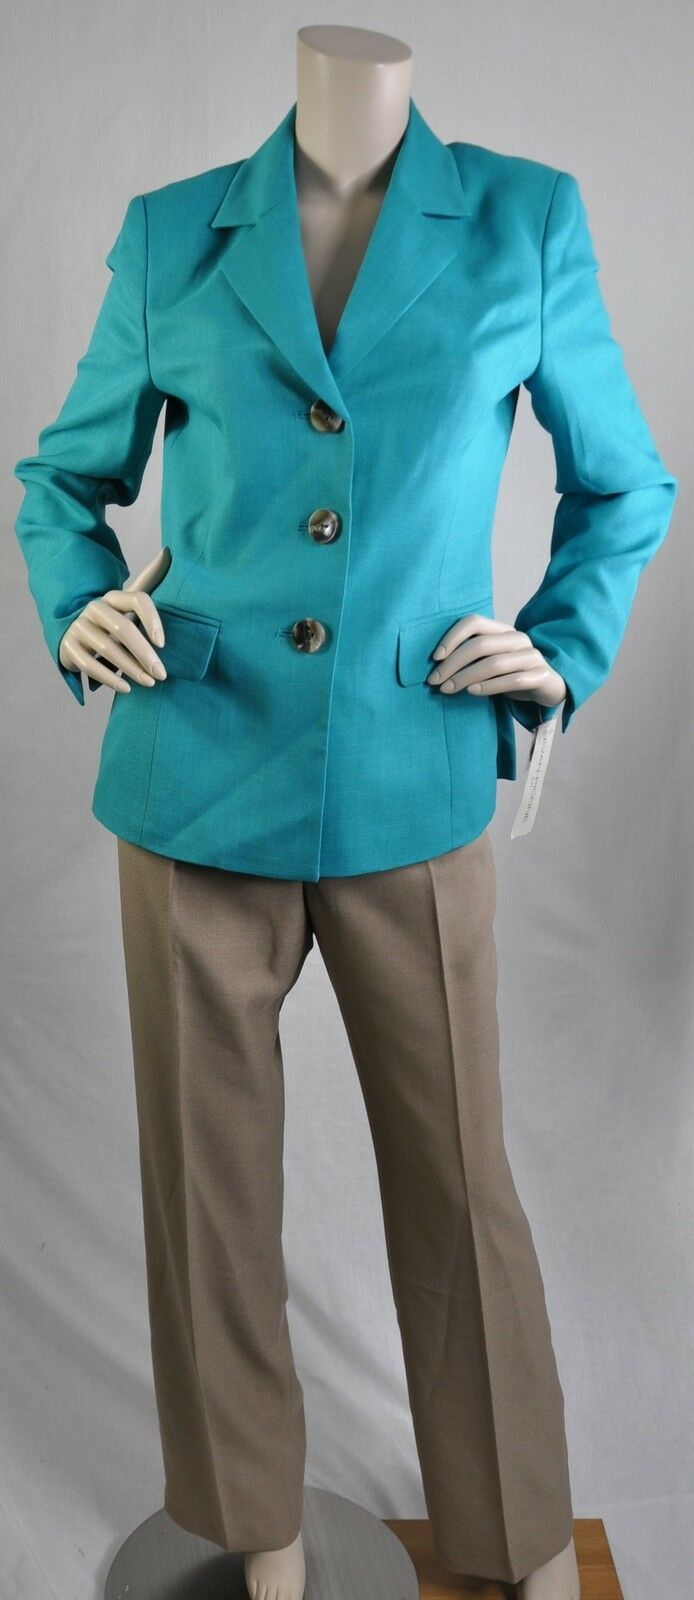 Evan Picone NWT Solid Pant Suit  Classic Time  Career Turquoise Sand Sz 6  200